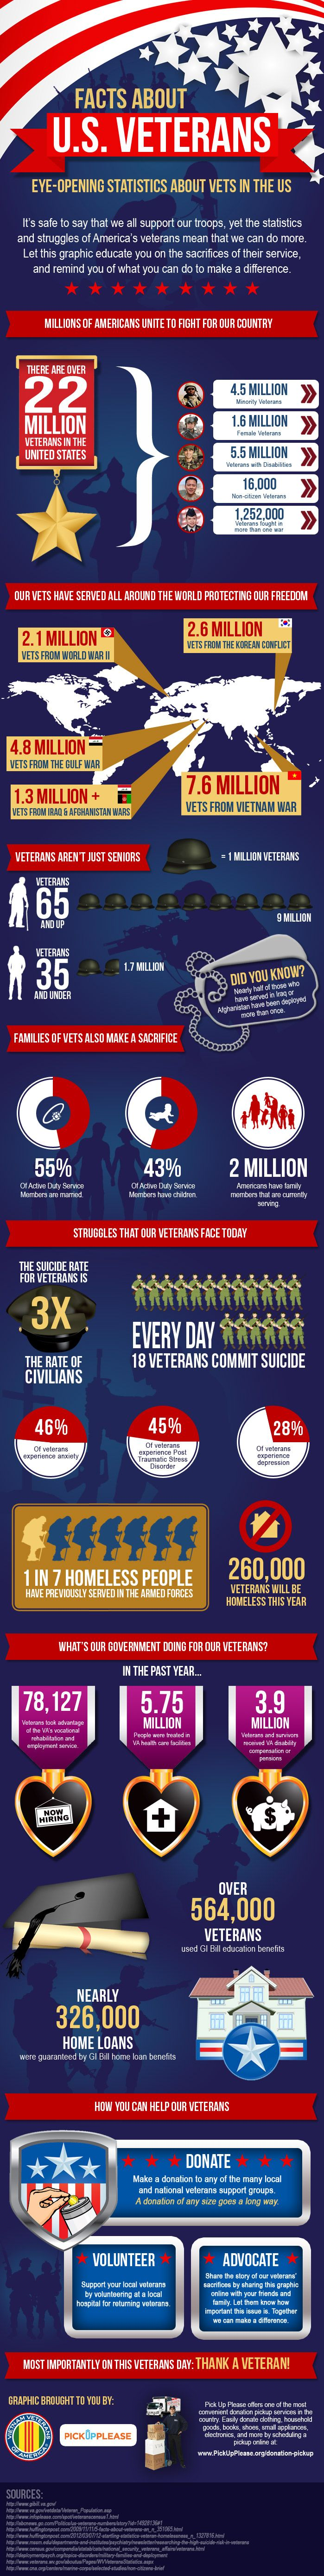 Facts About U.S. Veterans